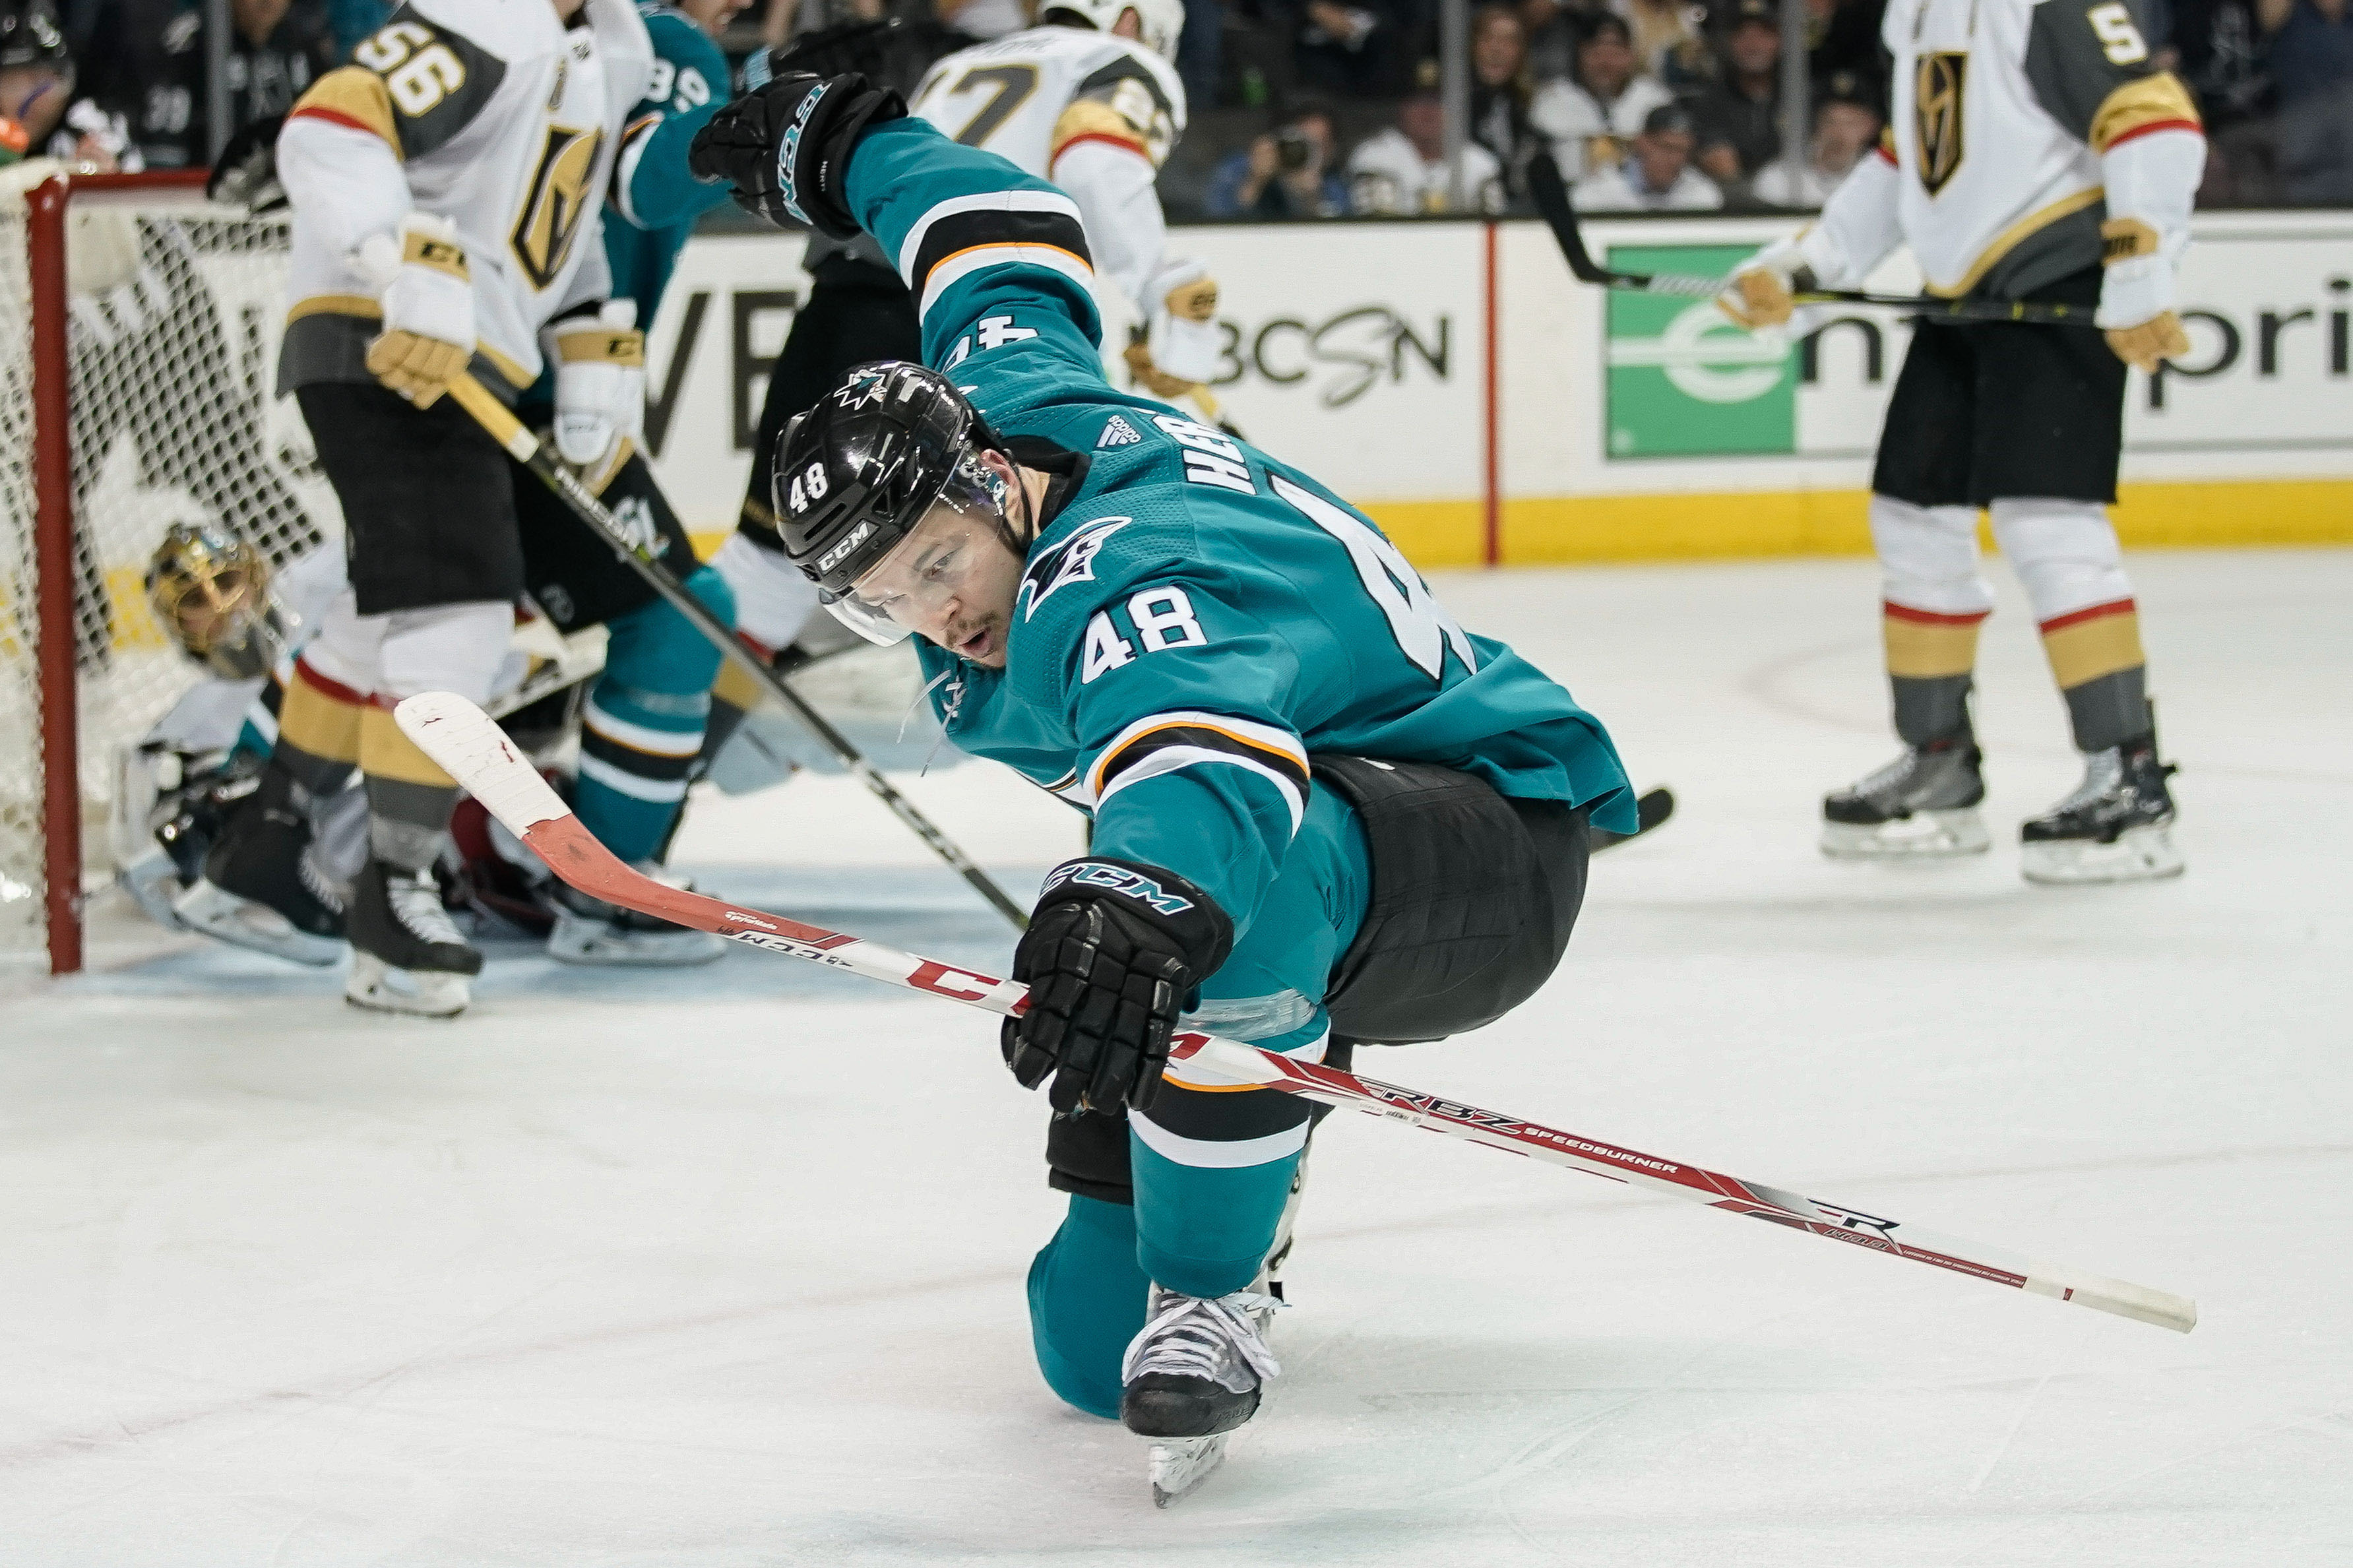 May 2, 2018; San Jose, CA, USA; San Jose Sharks center Tomas Hertl (48) celebrates during the second period against the Vegas Golden Knights in game four of the second round of the 2018 Stanley Cup Playoffs at SAP Center at San Jose.